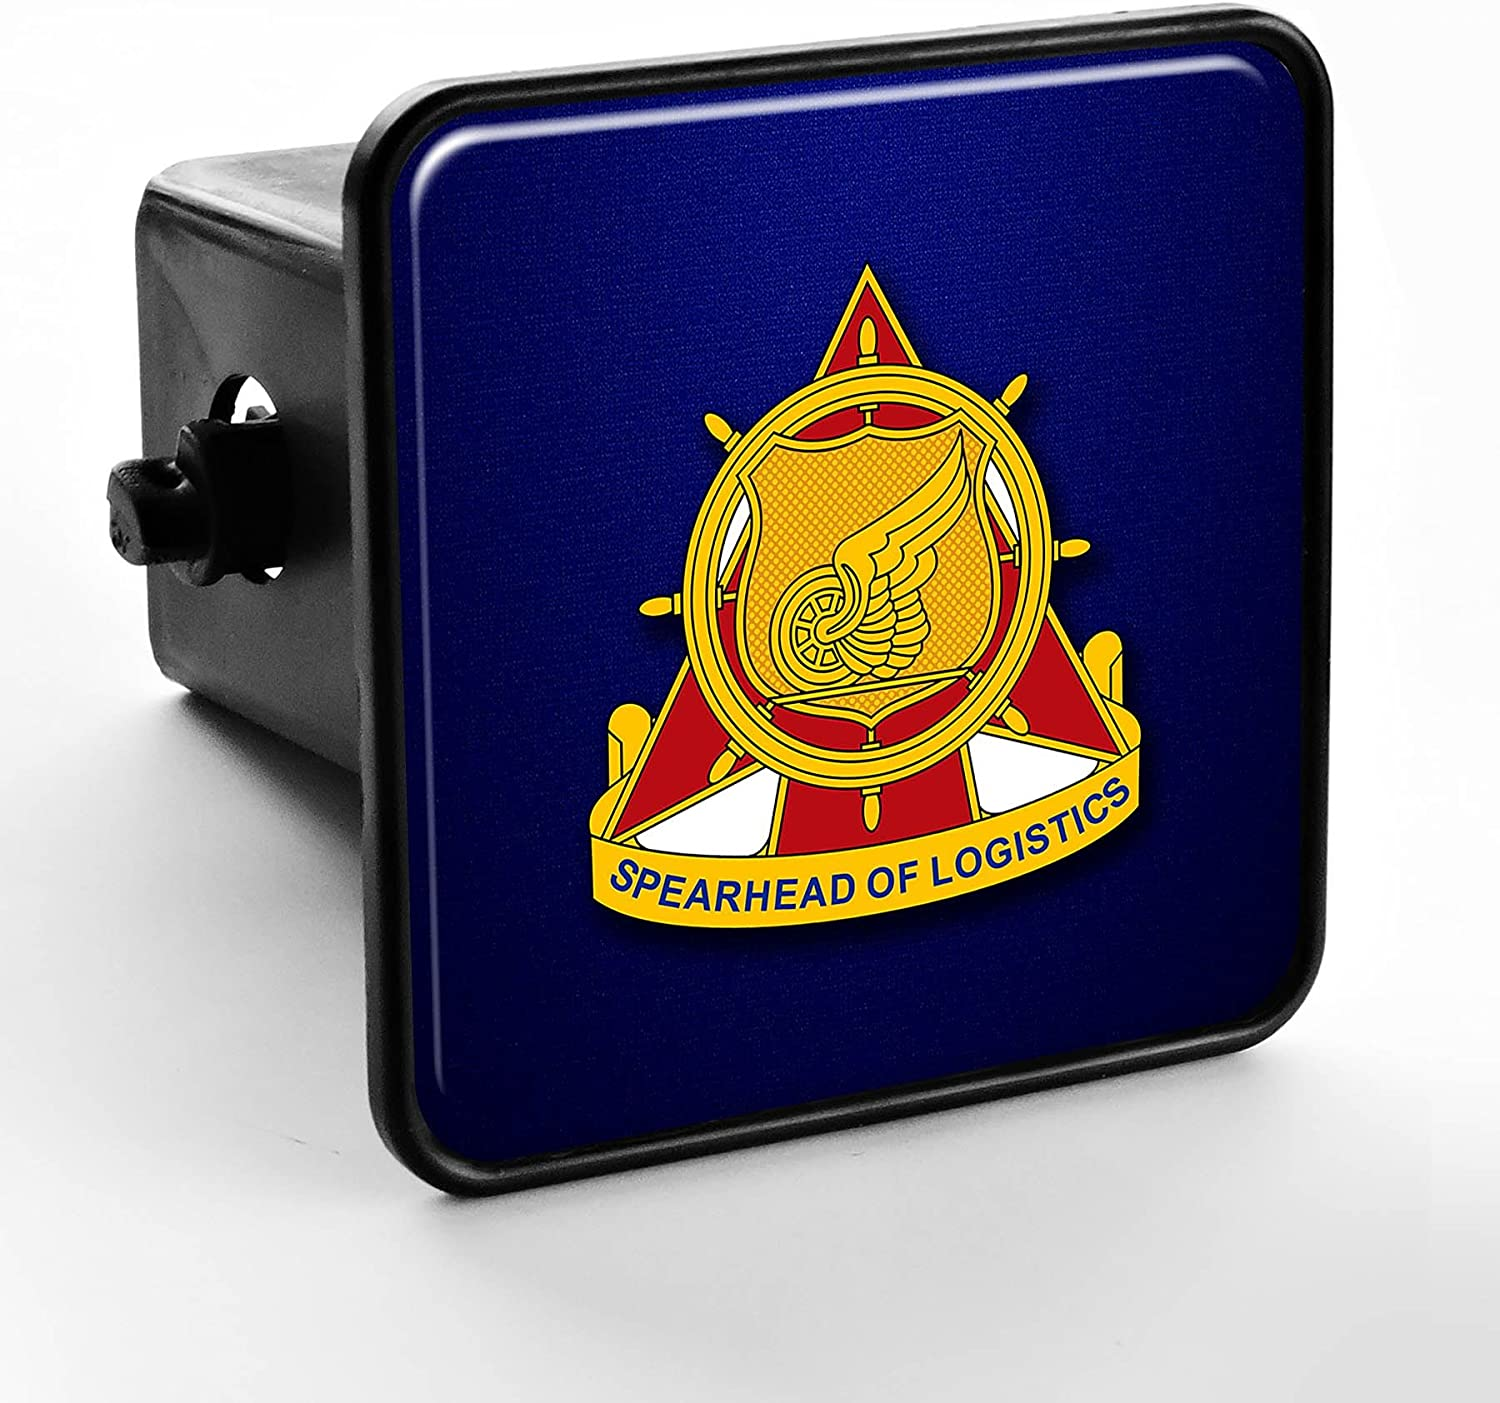 US Army Transportation Corps Regimental Insignia ExpressItBest Trailer Hitch Cover